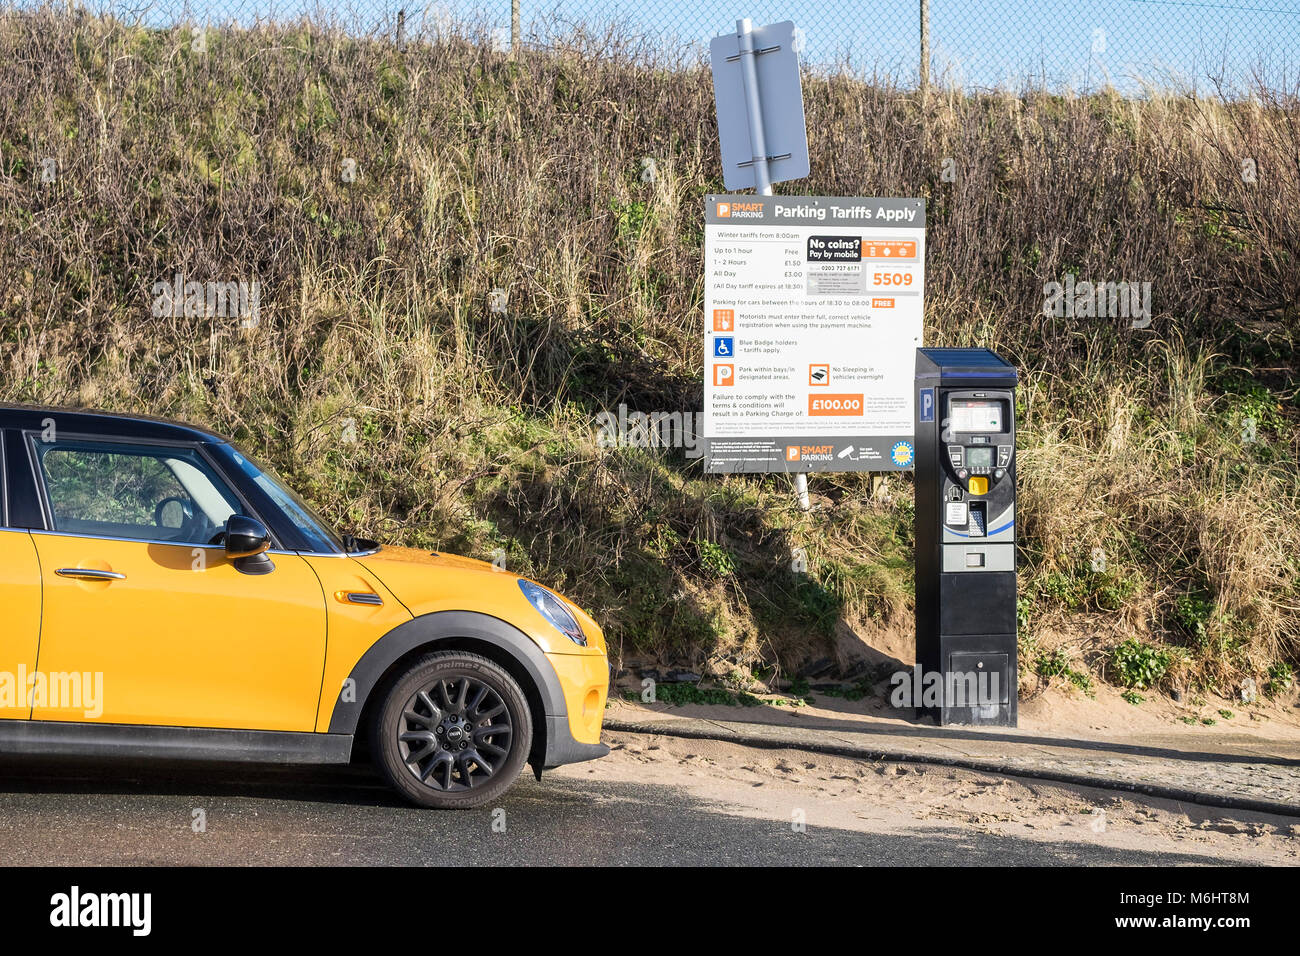 Car parking payment machine owned by Smart Parking Company at Fistral Beach car park newquay Cornwall. - Stock Image